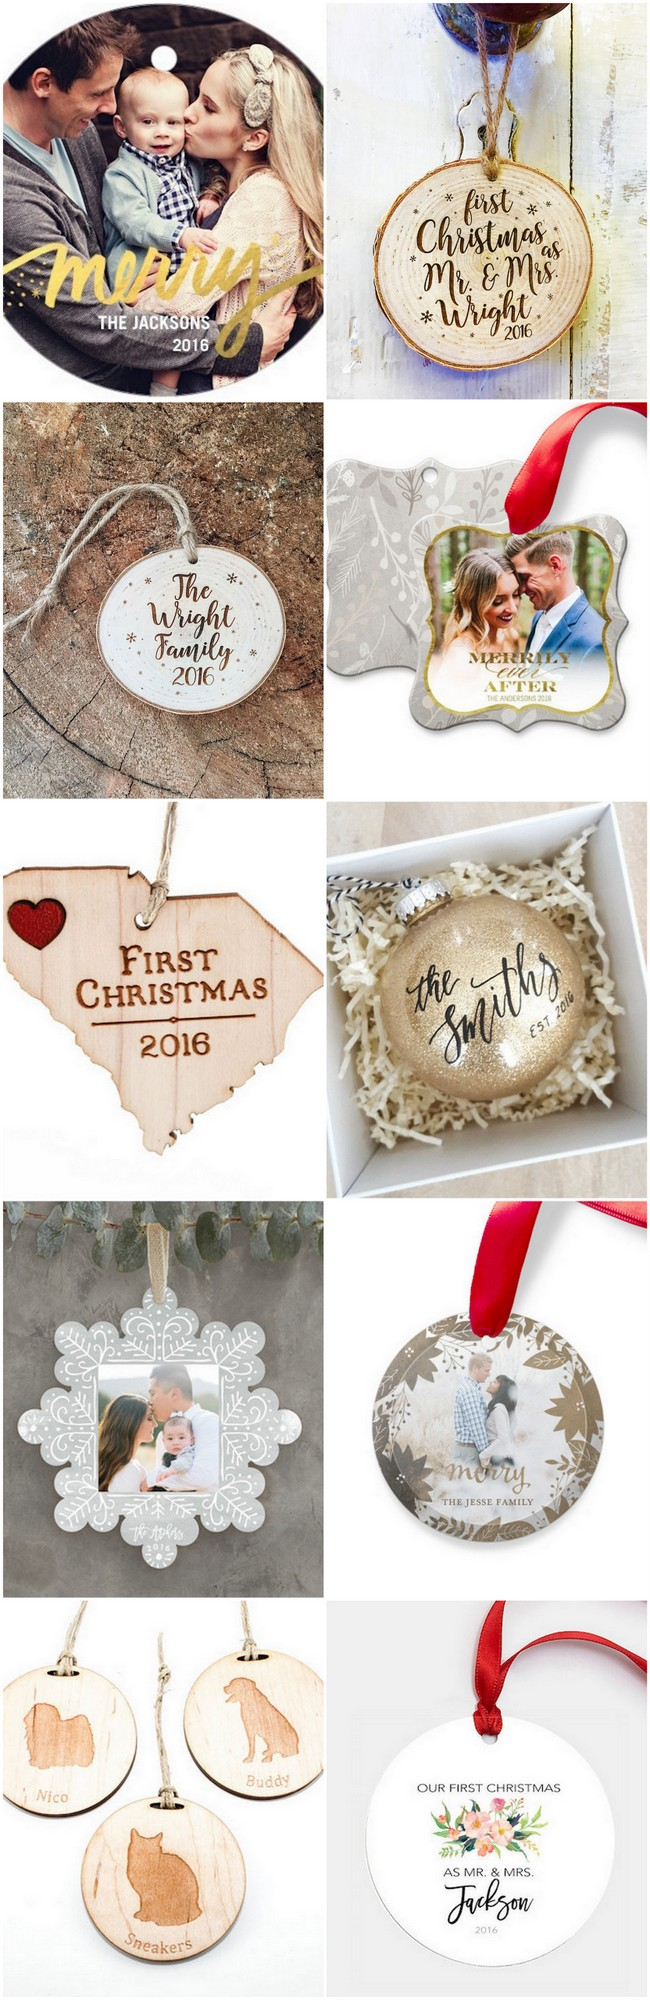 newlywed-christmas-ornaments-4